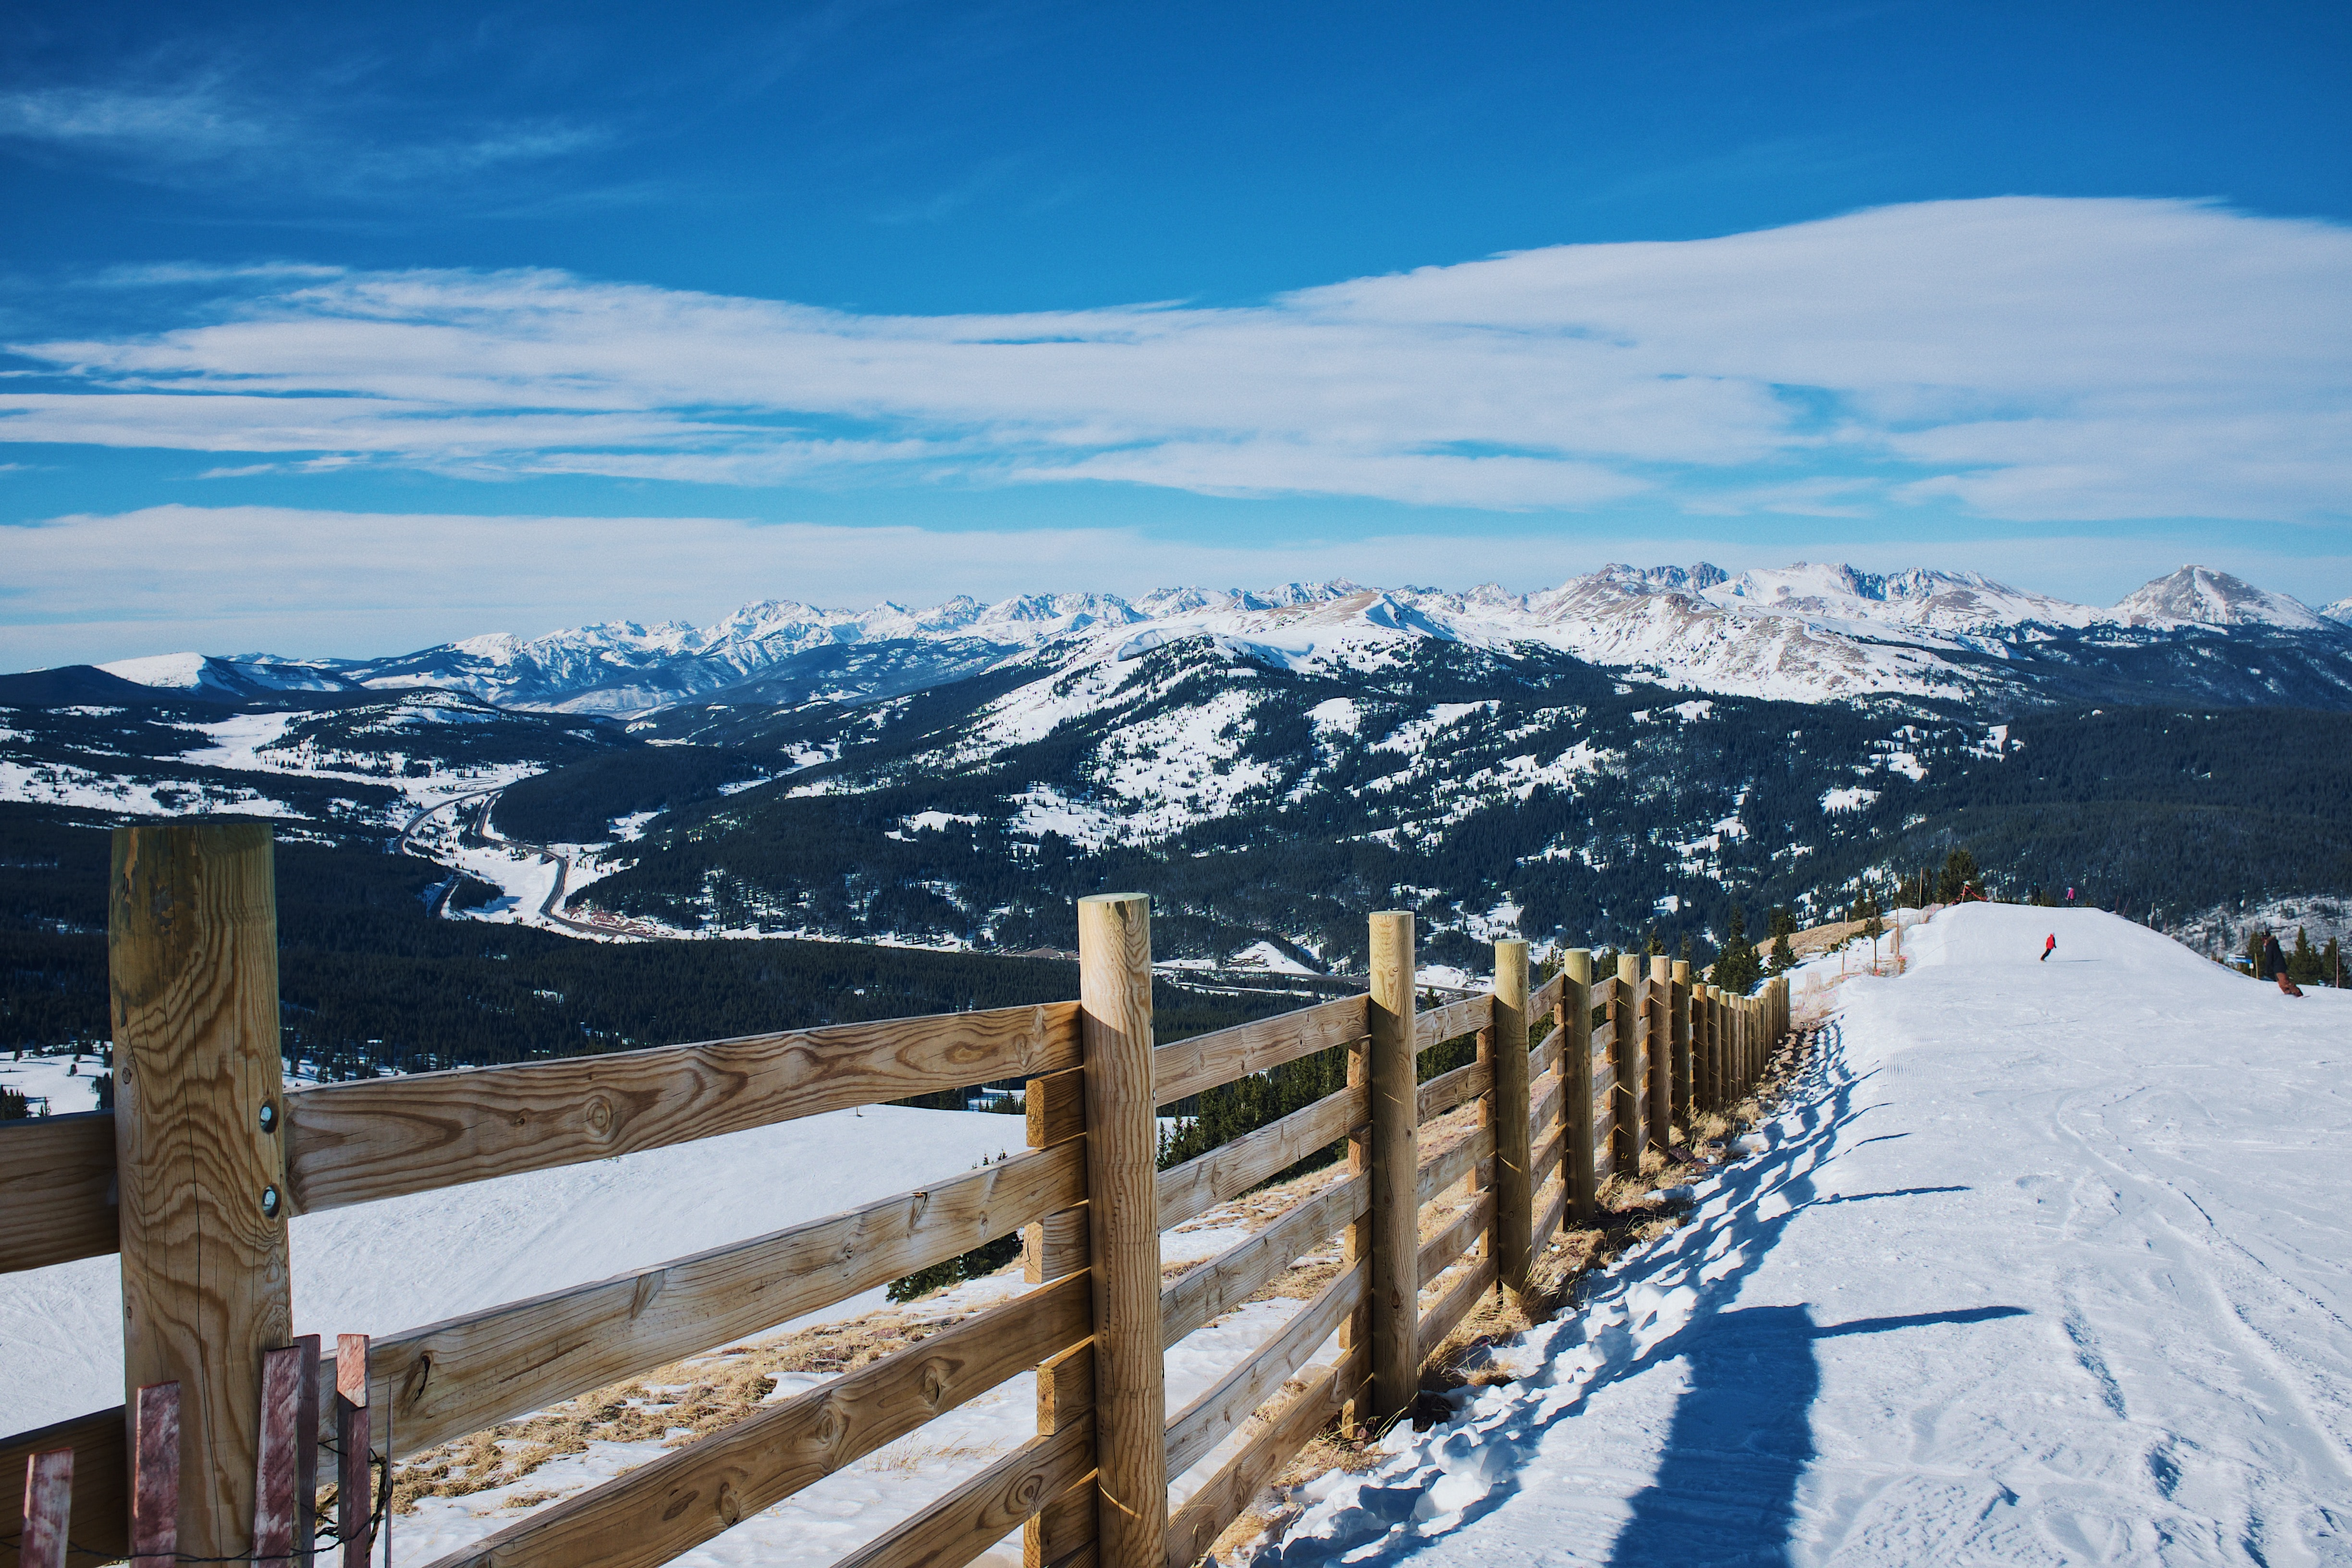 snowfield and brown wooden fence near mountain at daytime